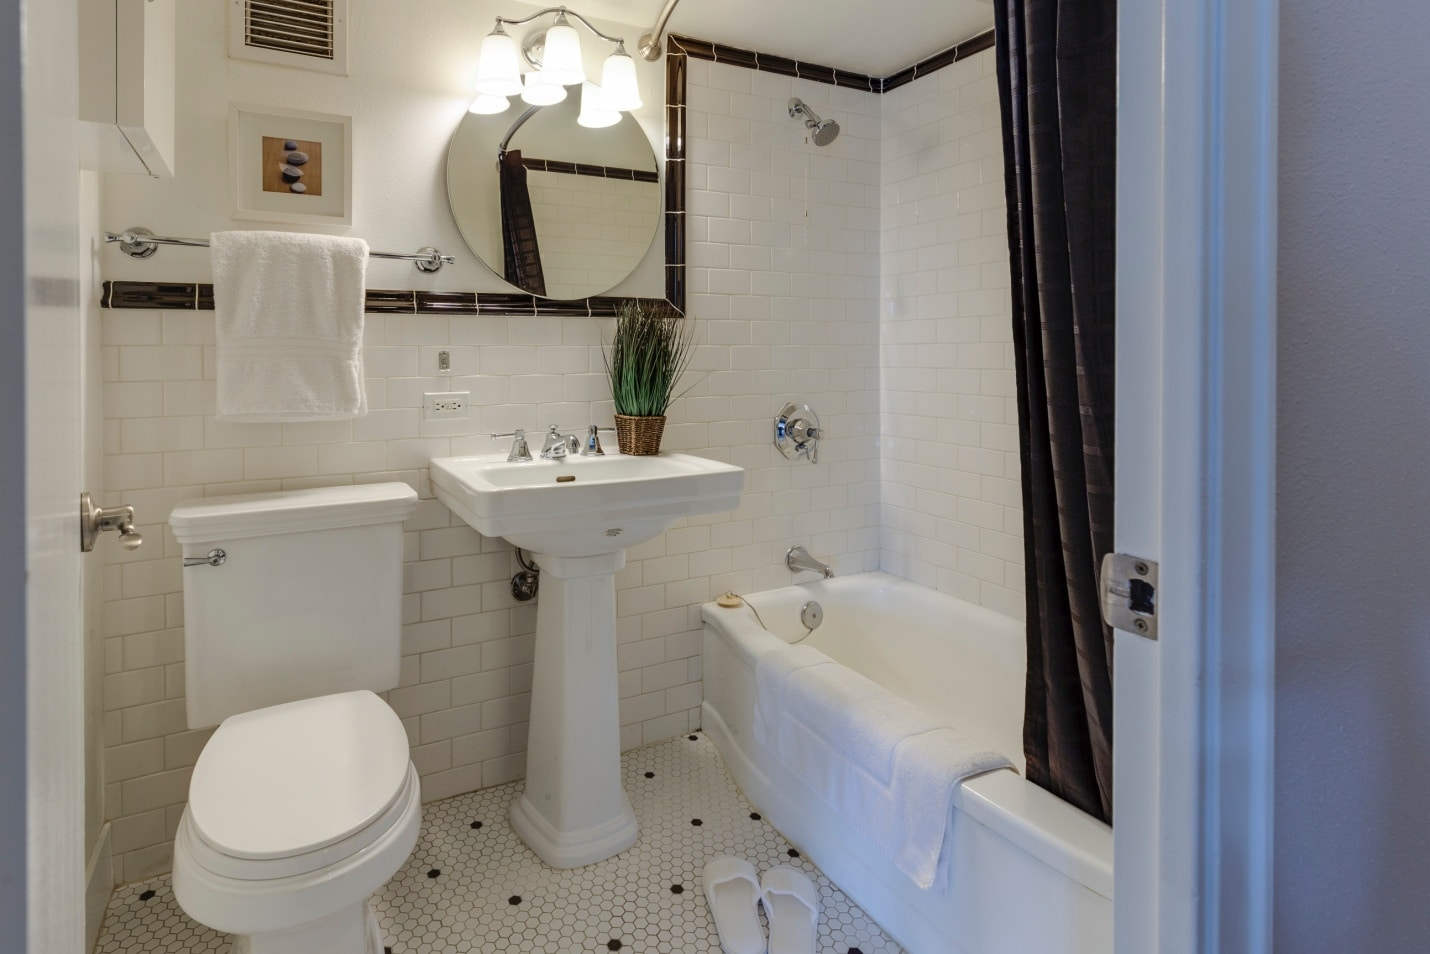 Choosing the best paint color for a small bathroom with no windows